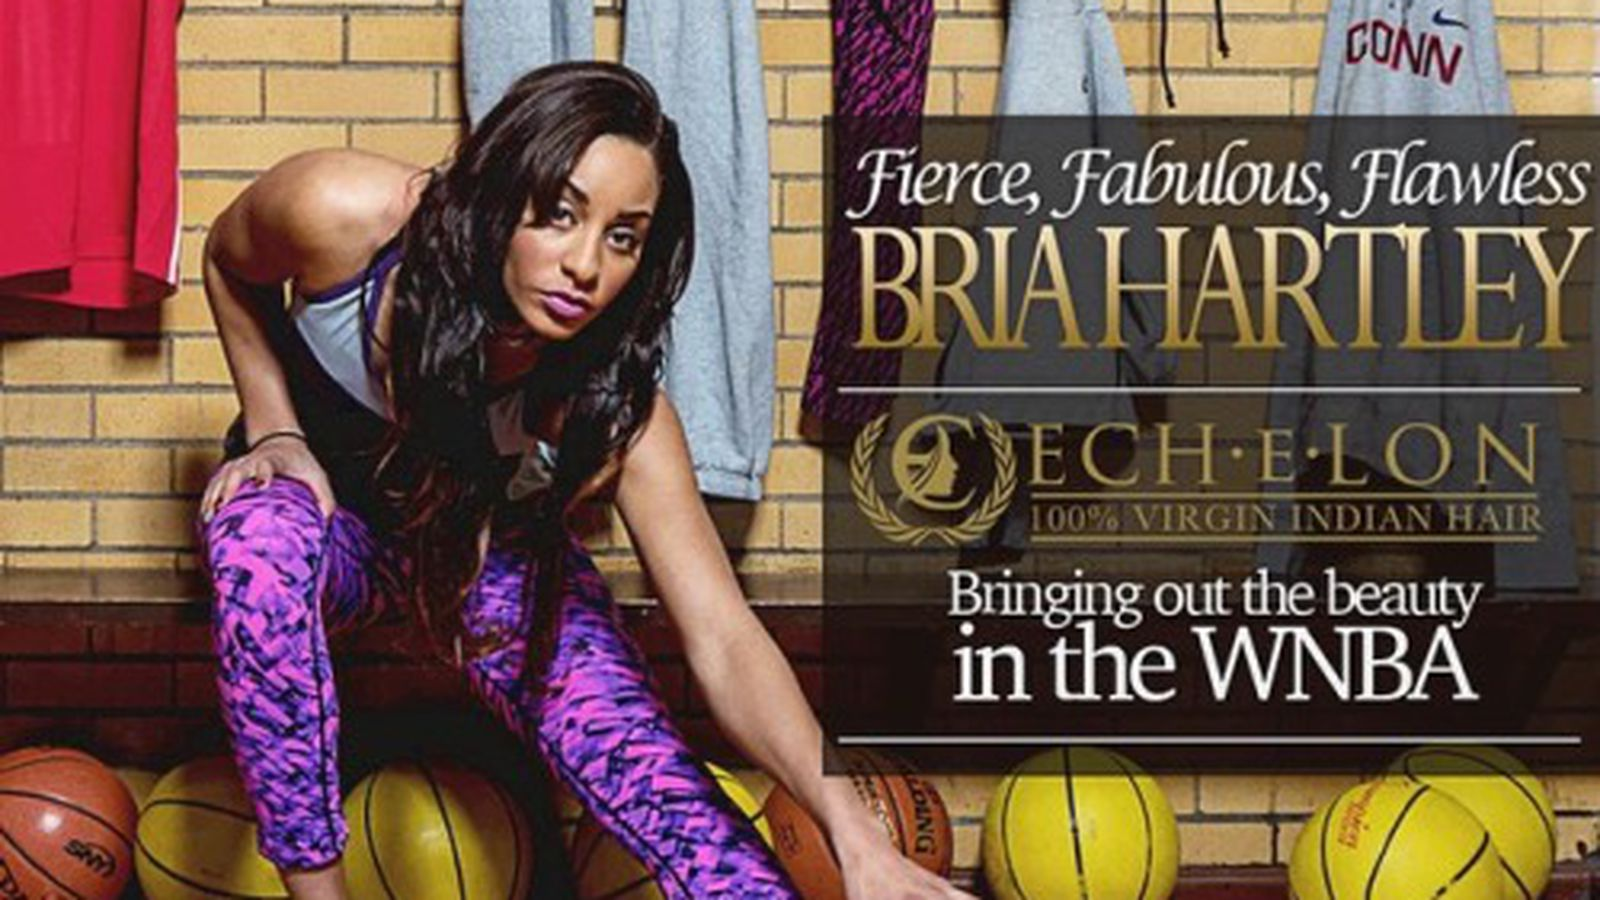 bria hartley gets endorsement from echelon hair swish appeal